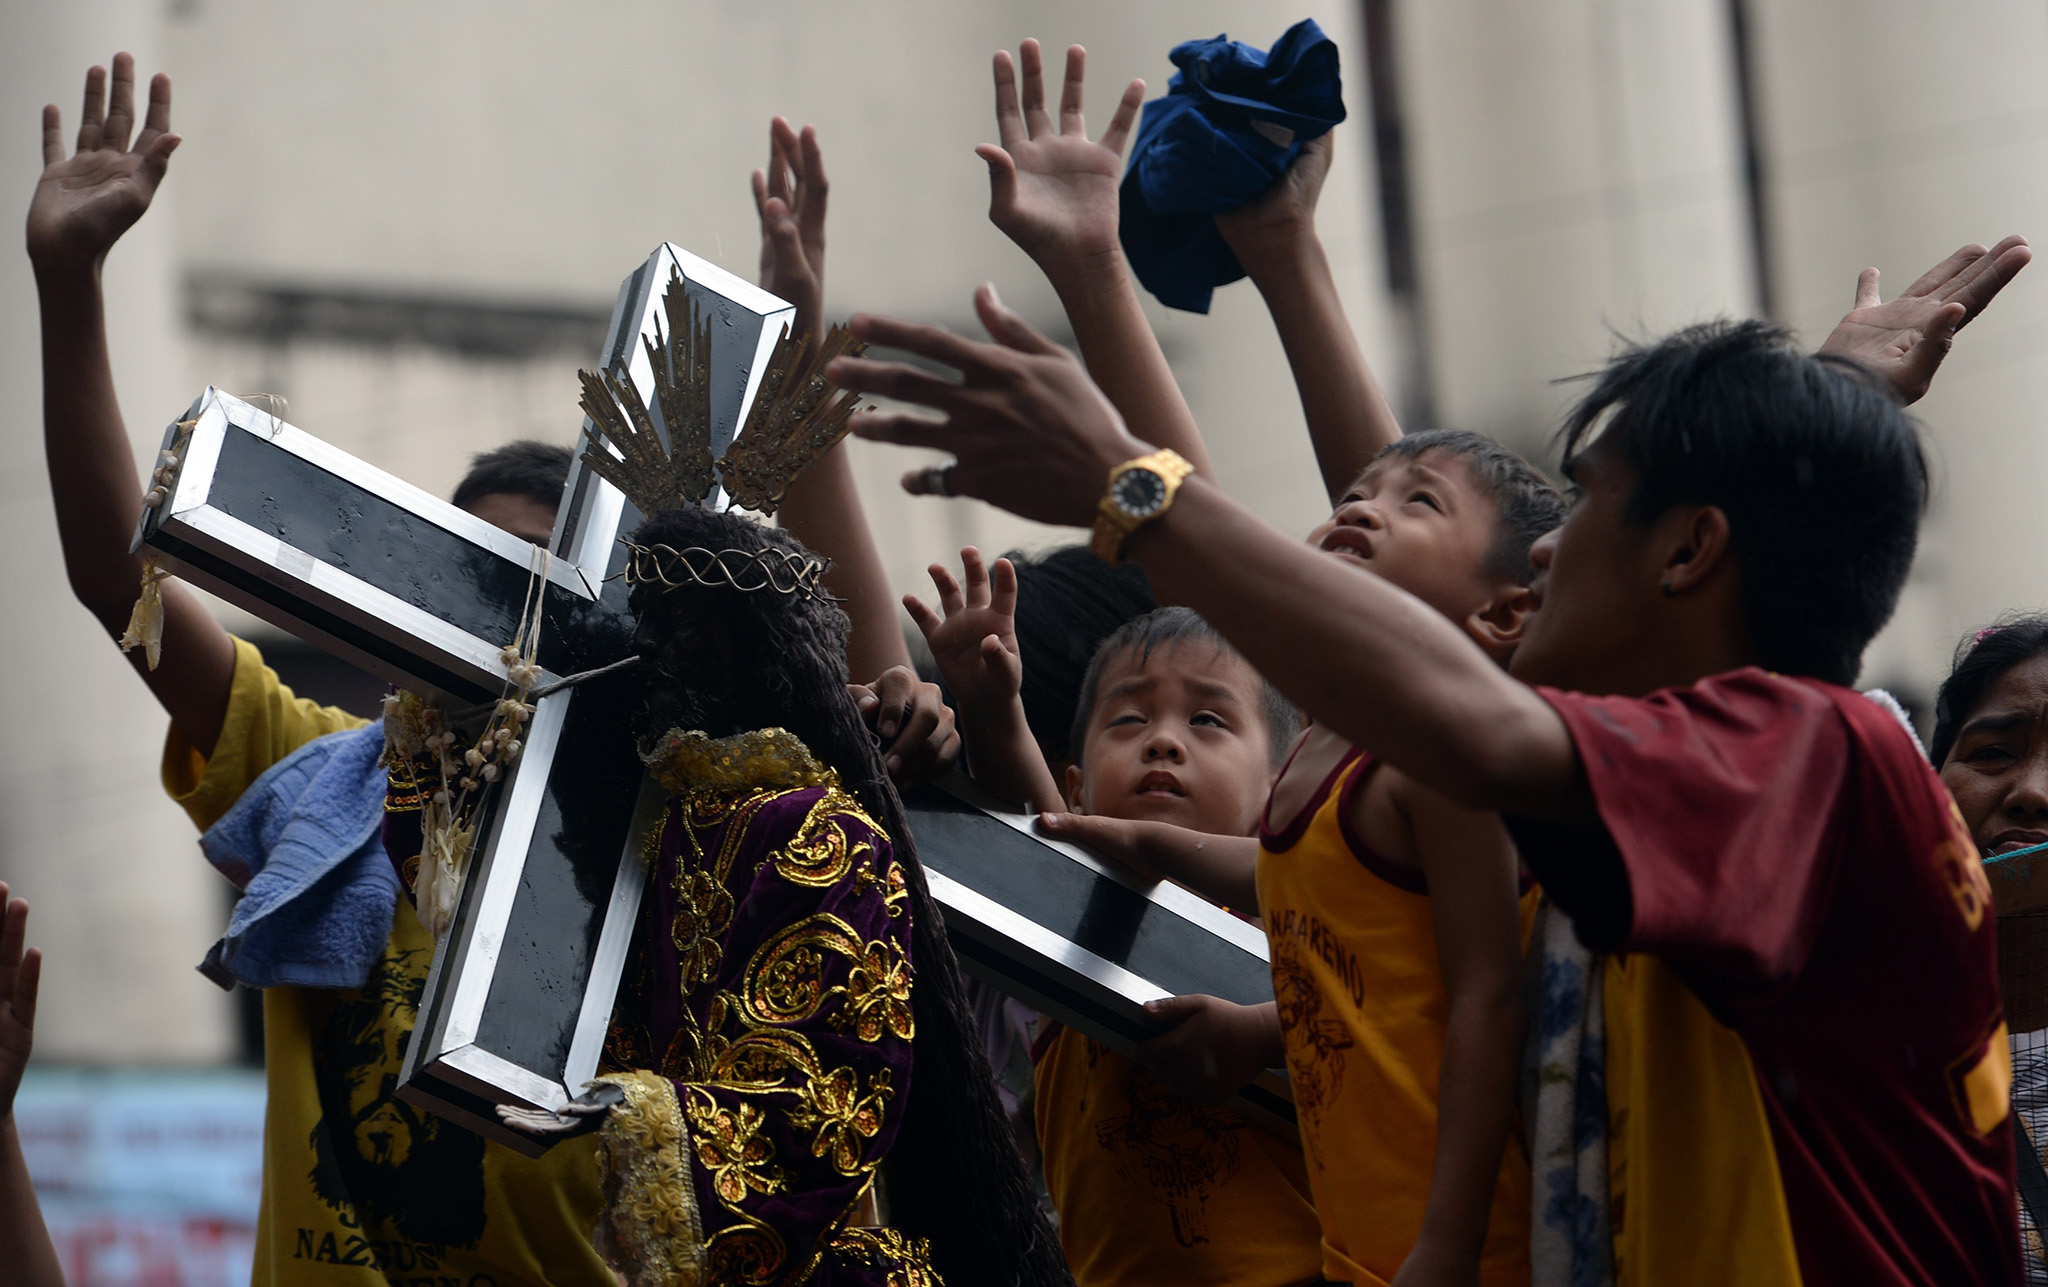 Devotees raise their hands next to a replica of the Black Nazarene in Manila ahead of the annual religious procession, during which hundreds of thousands of barefoot Catholic devotees will honour an ebony statue of Jesus Christ, which they believe has miraculous powers